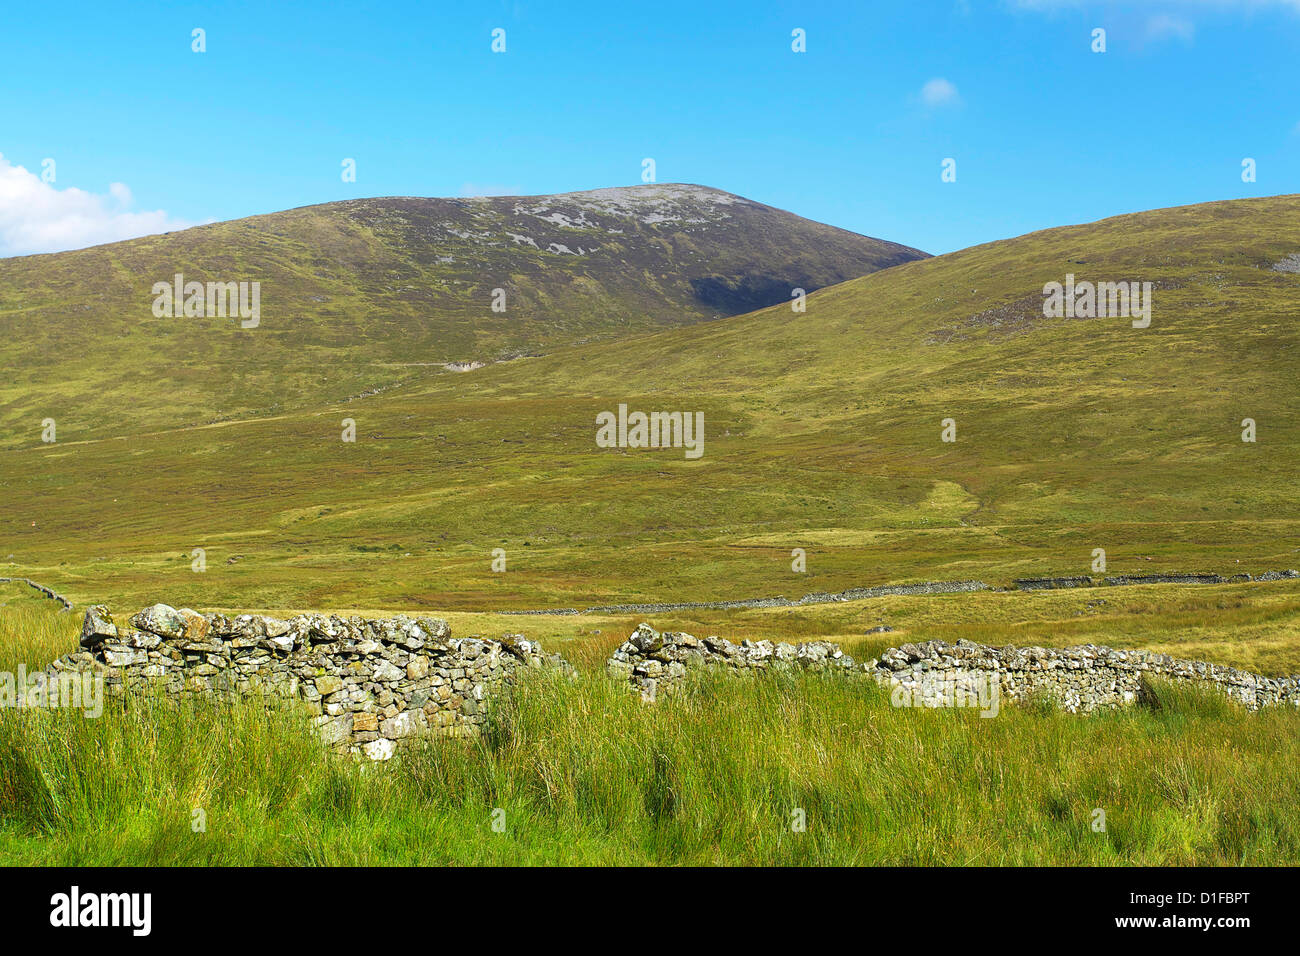 Slievenaman, Mourne Mountains, County Down, Ulster, Northern Ireland, United Kingdom, Europe - Stock Image